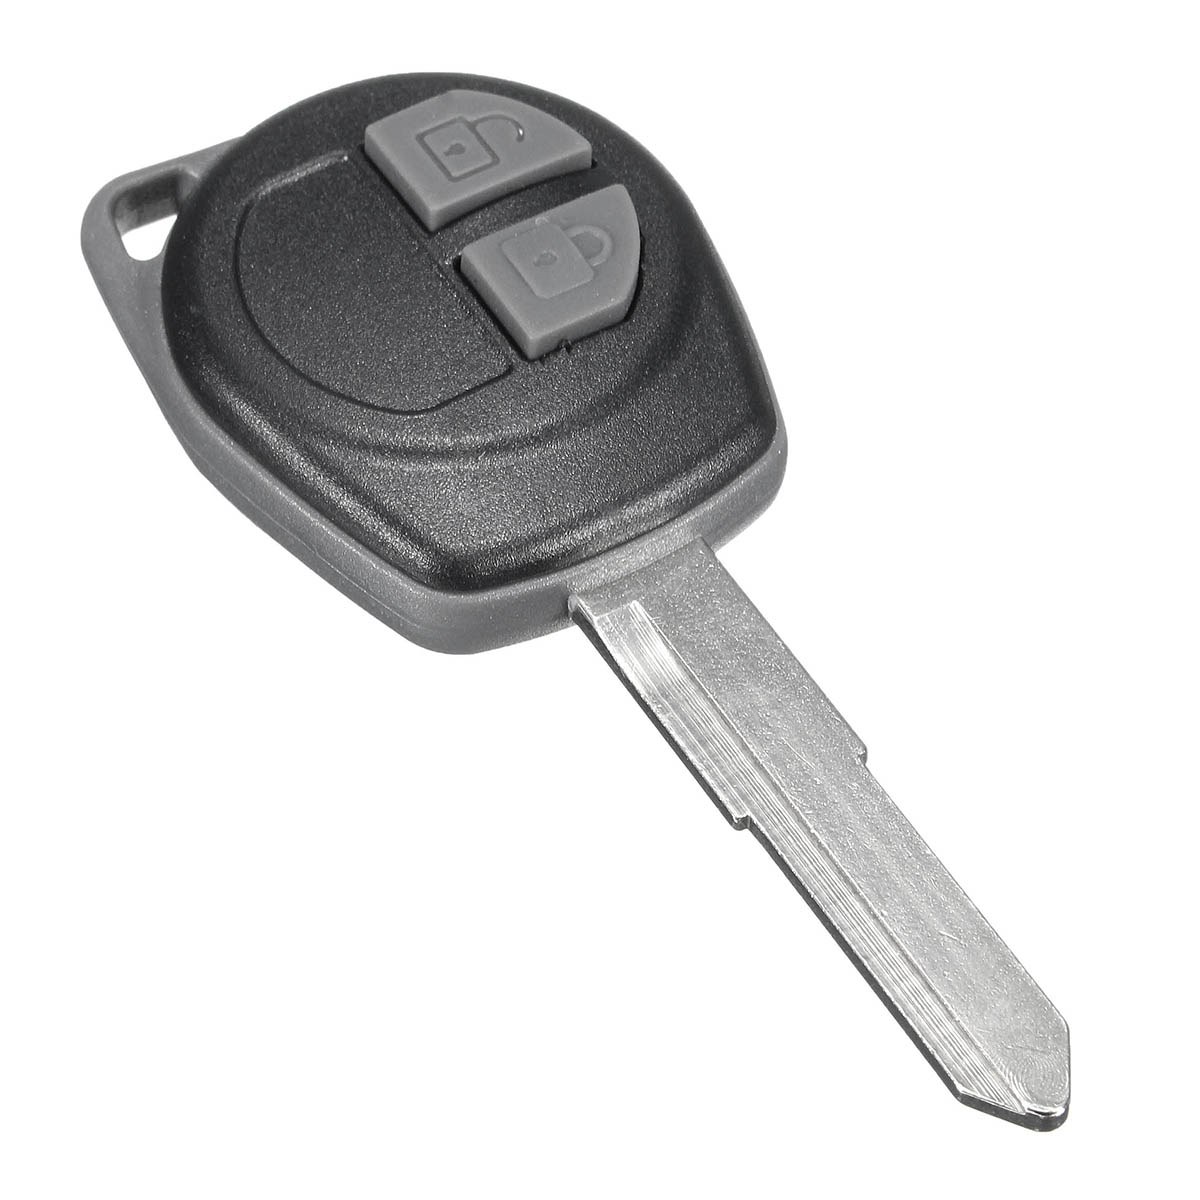 NEW 2 BUTTON UNCUT REMOTE KEY FOB CASE FOR SUZUKI IGNIS ALTO SX4 VAUXHALL AGILA